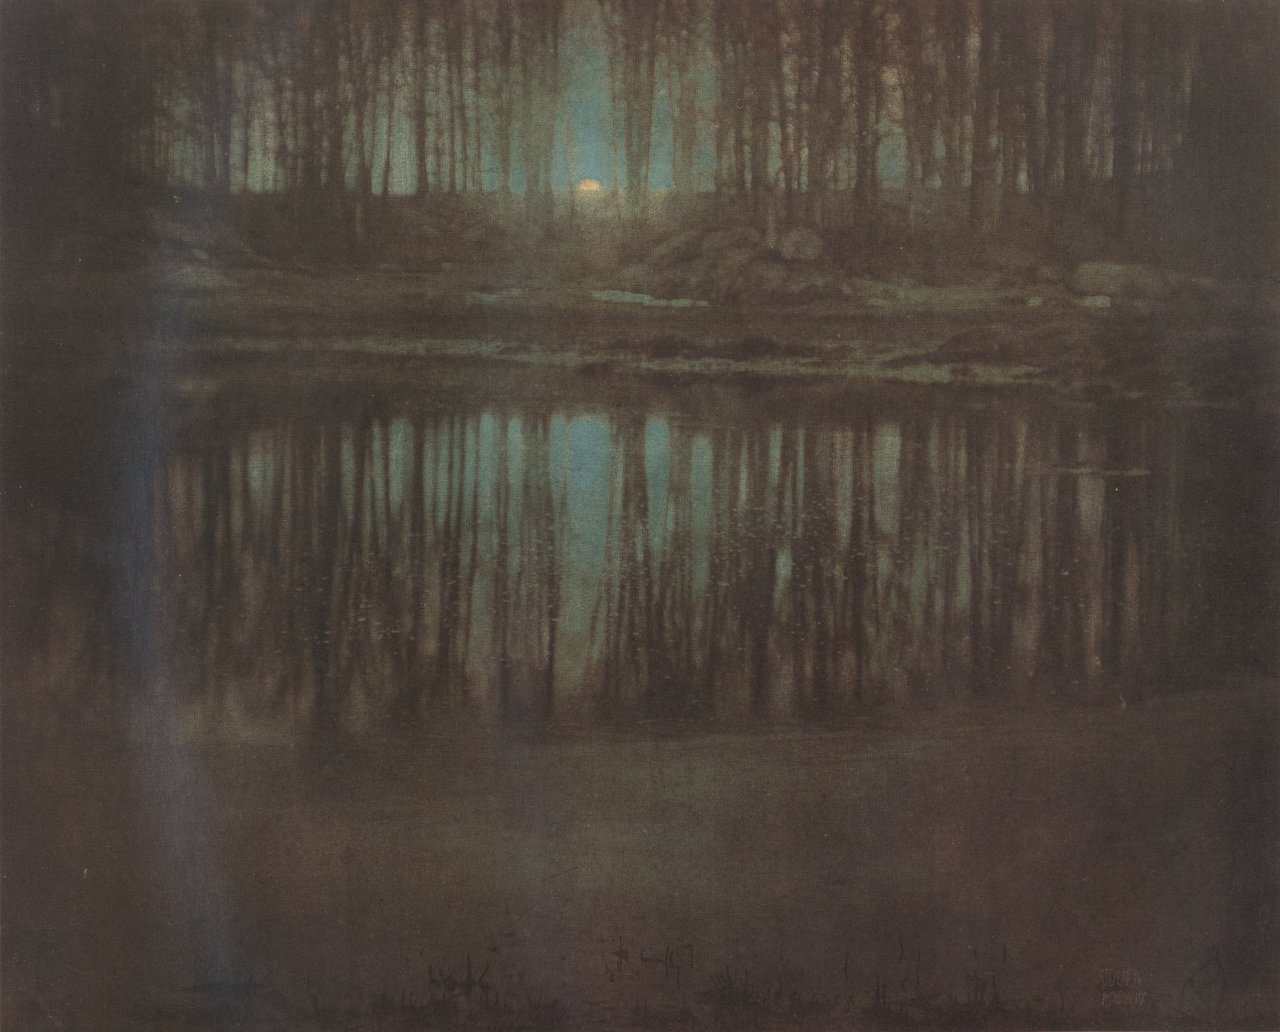 The Pond—Moonlight The Pond—Moonlight is a pictorialist photograph by Edward Steichen. The photograph was made in 1904 in Mamaroneck, New York, near the home of his friend, art critic Charles Caffin. The photograph features a forest across a pond, with part of the moon appearing over the horizon in a gap in the trees. The Pond—Moonlight is an early color photograph, predating the first widespread color photography technique (the 1907 autochrome), and was created by manually applying light-sensitive gums. Only three known versions of the Pond-Moonlight are still in existence and, as a result of the hand-layering of the gums, each is unique. In February 2006, a print of the photograph sold for US $2.9 million, at the time, the highest price ever paid for a photograph at auction.